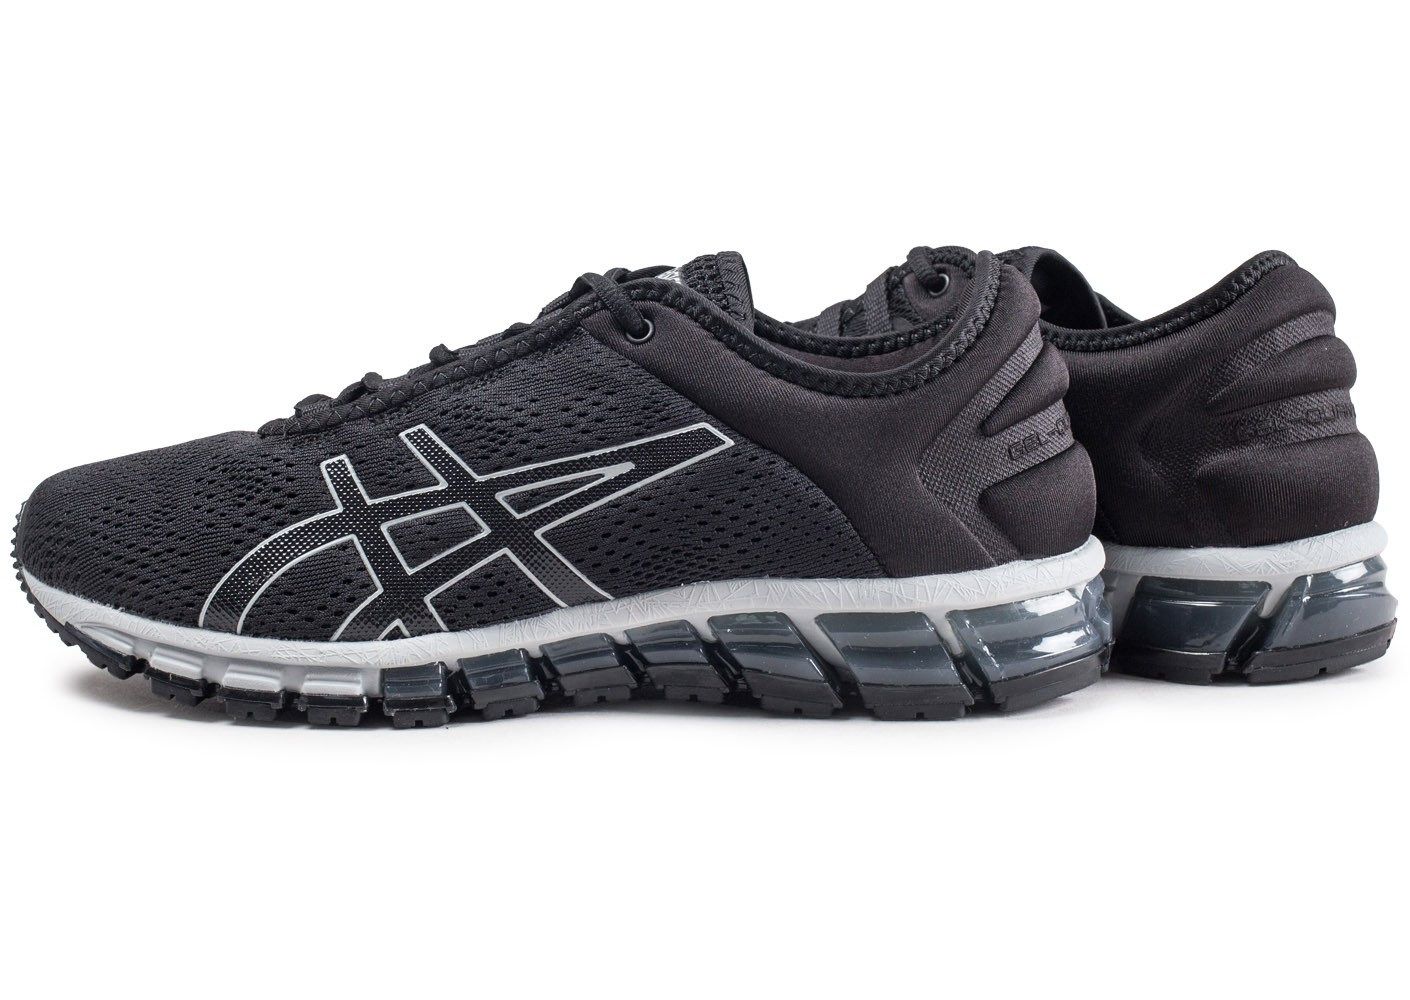 Quantum Chaussures Chausport Homme 180 Gel Asics Noire Baskets 6bfgvyY7